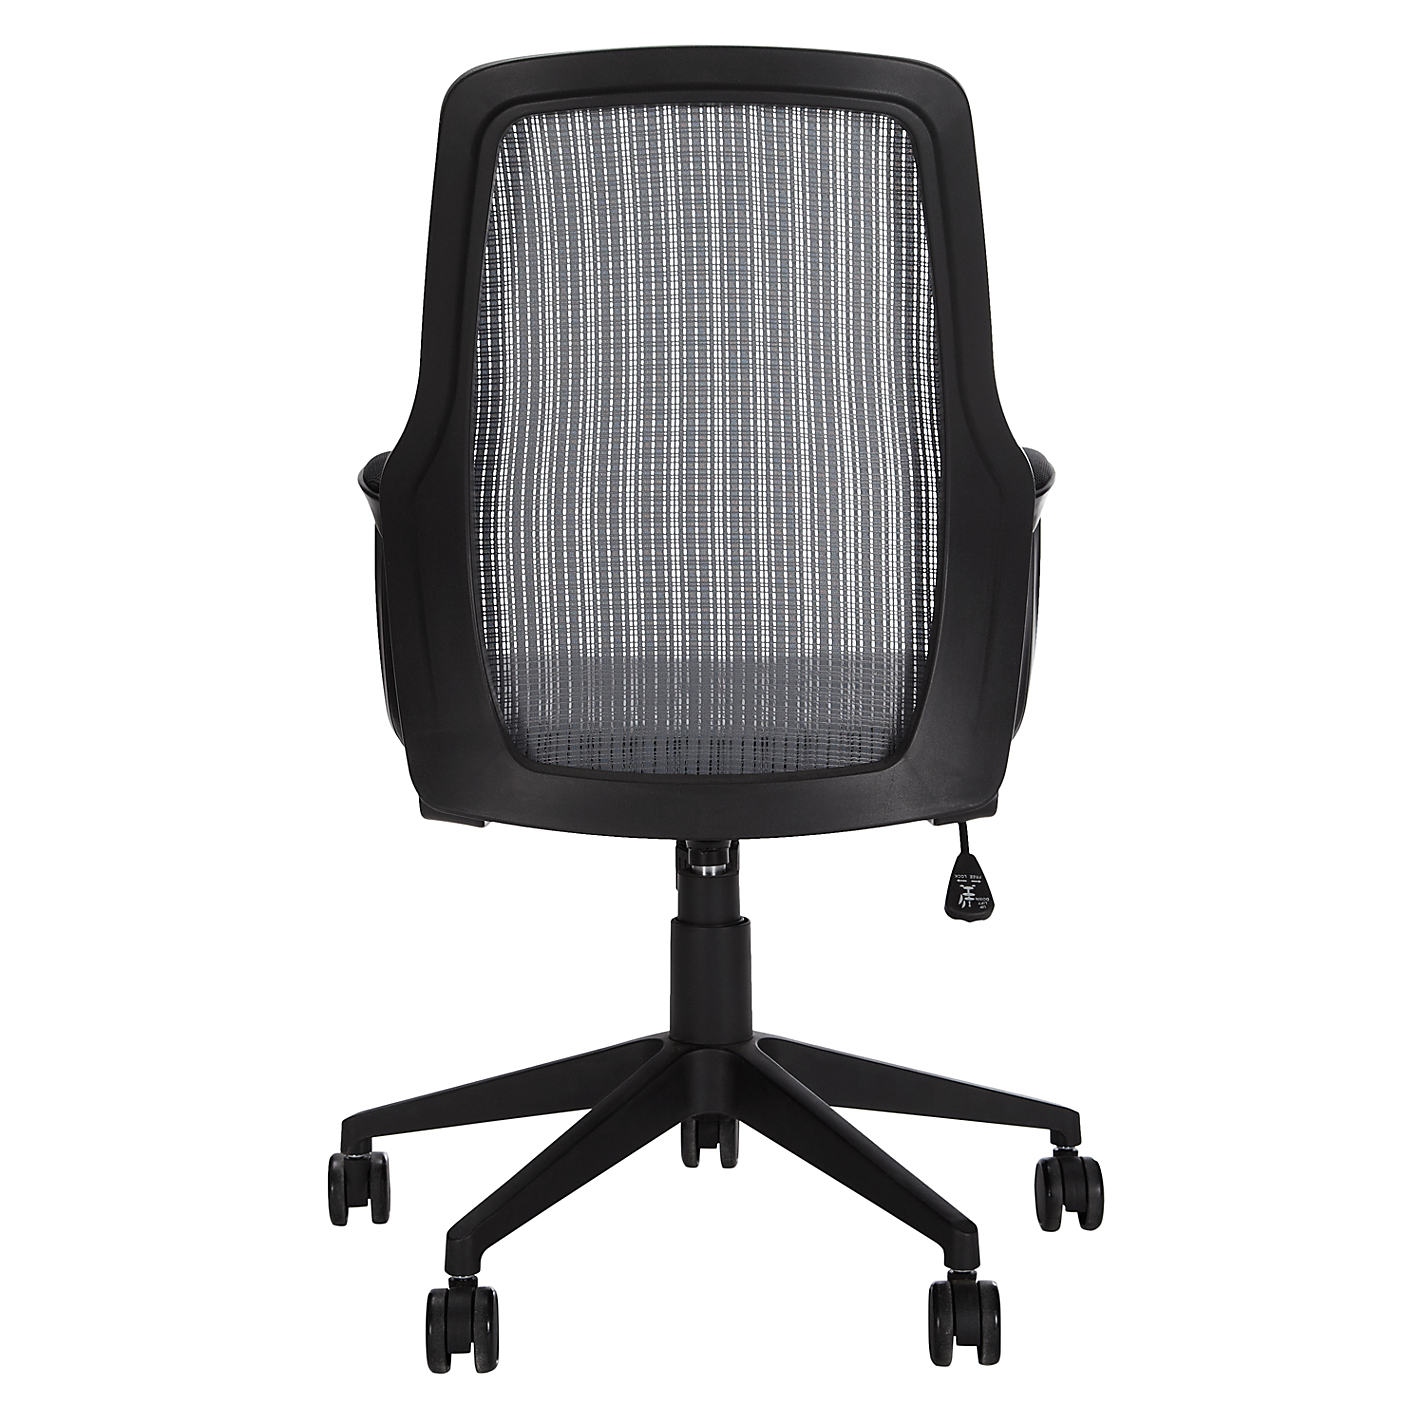 office chairs john lewis. buy john lewis lois office chair grey online at johnlewiscom chairs e